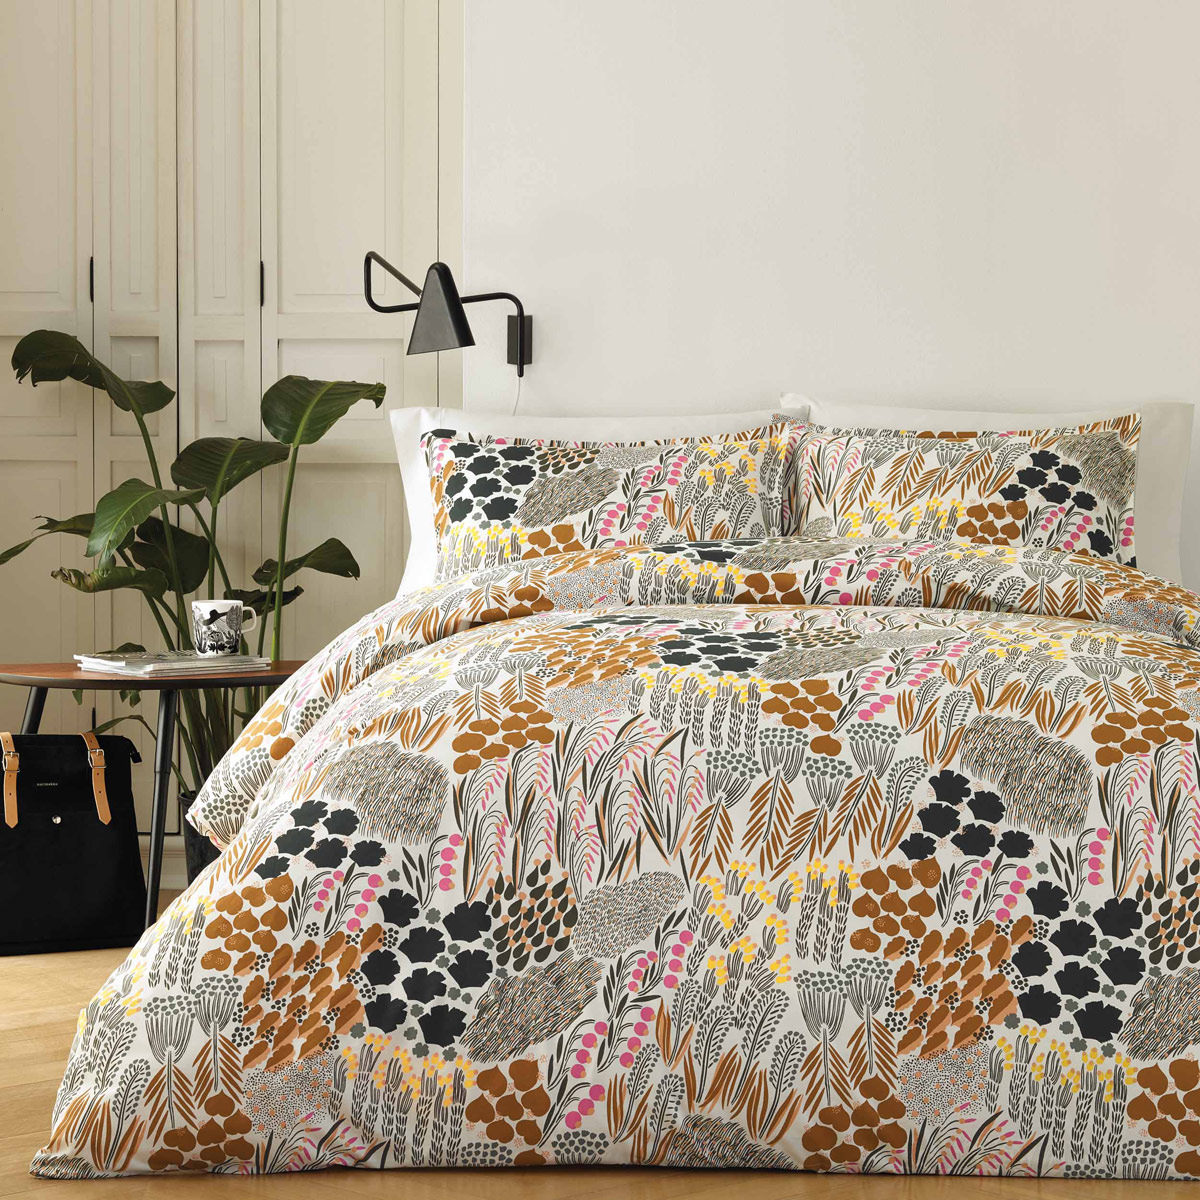 Marimekko Pieni Letto Full Queen Duvet Cover Set